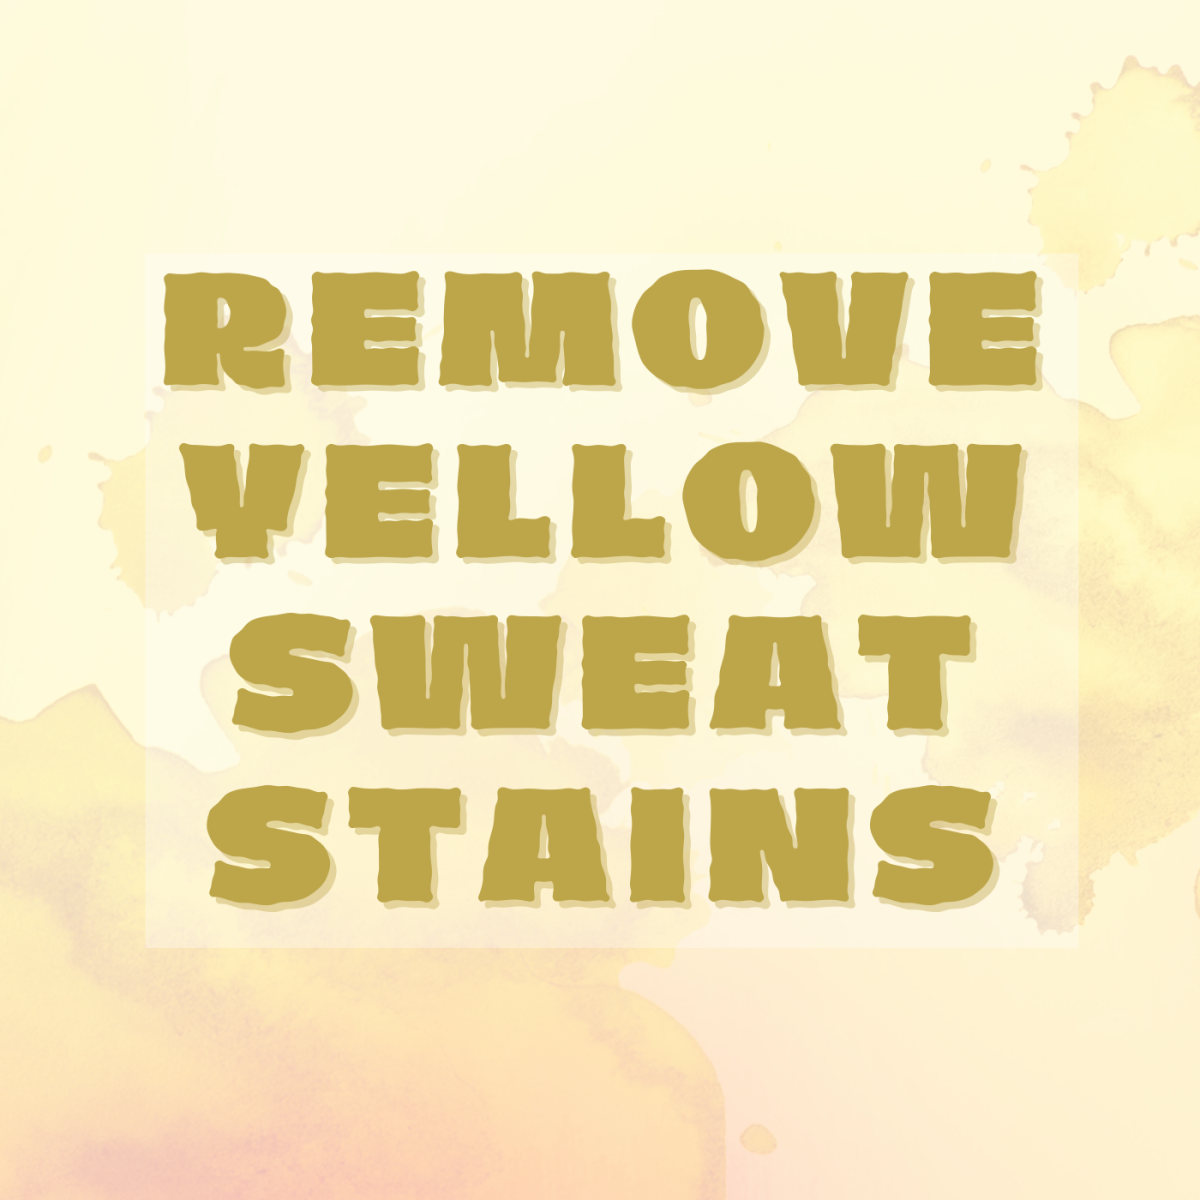 Remove yellow sweat stains from clothes.